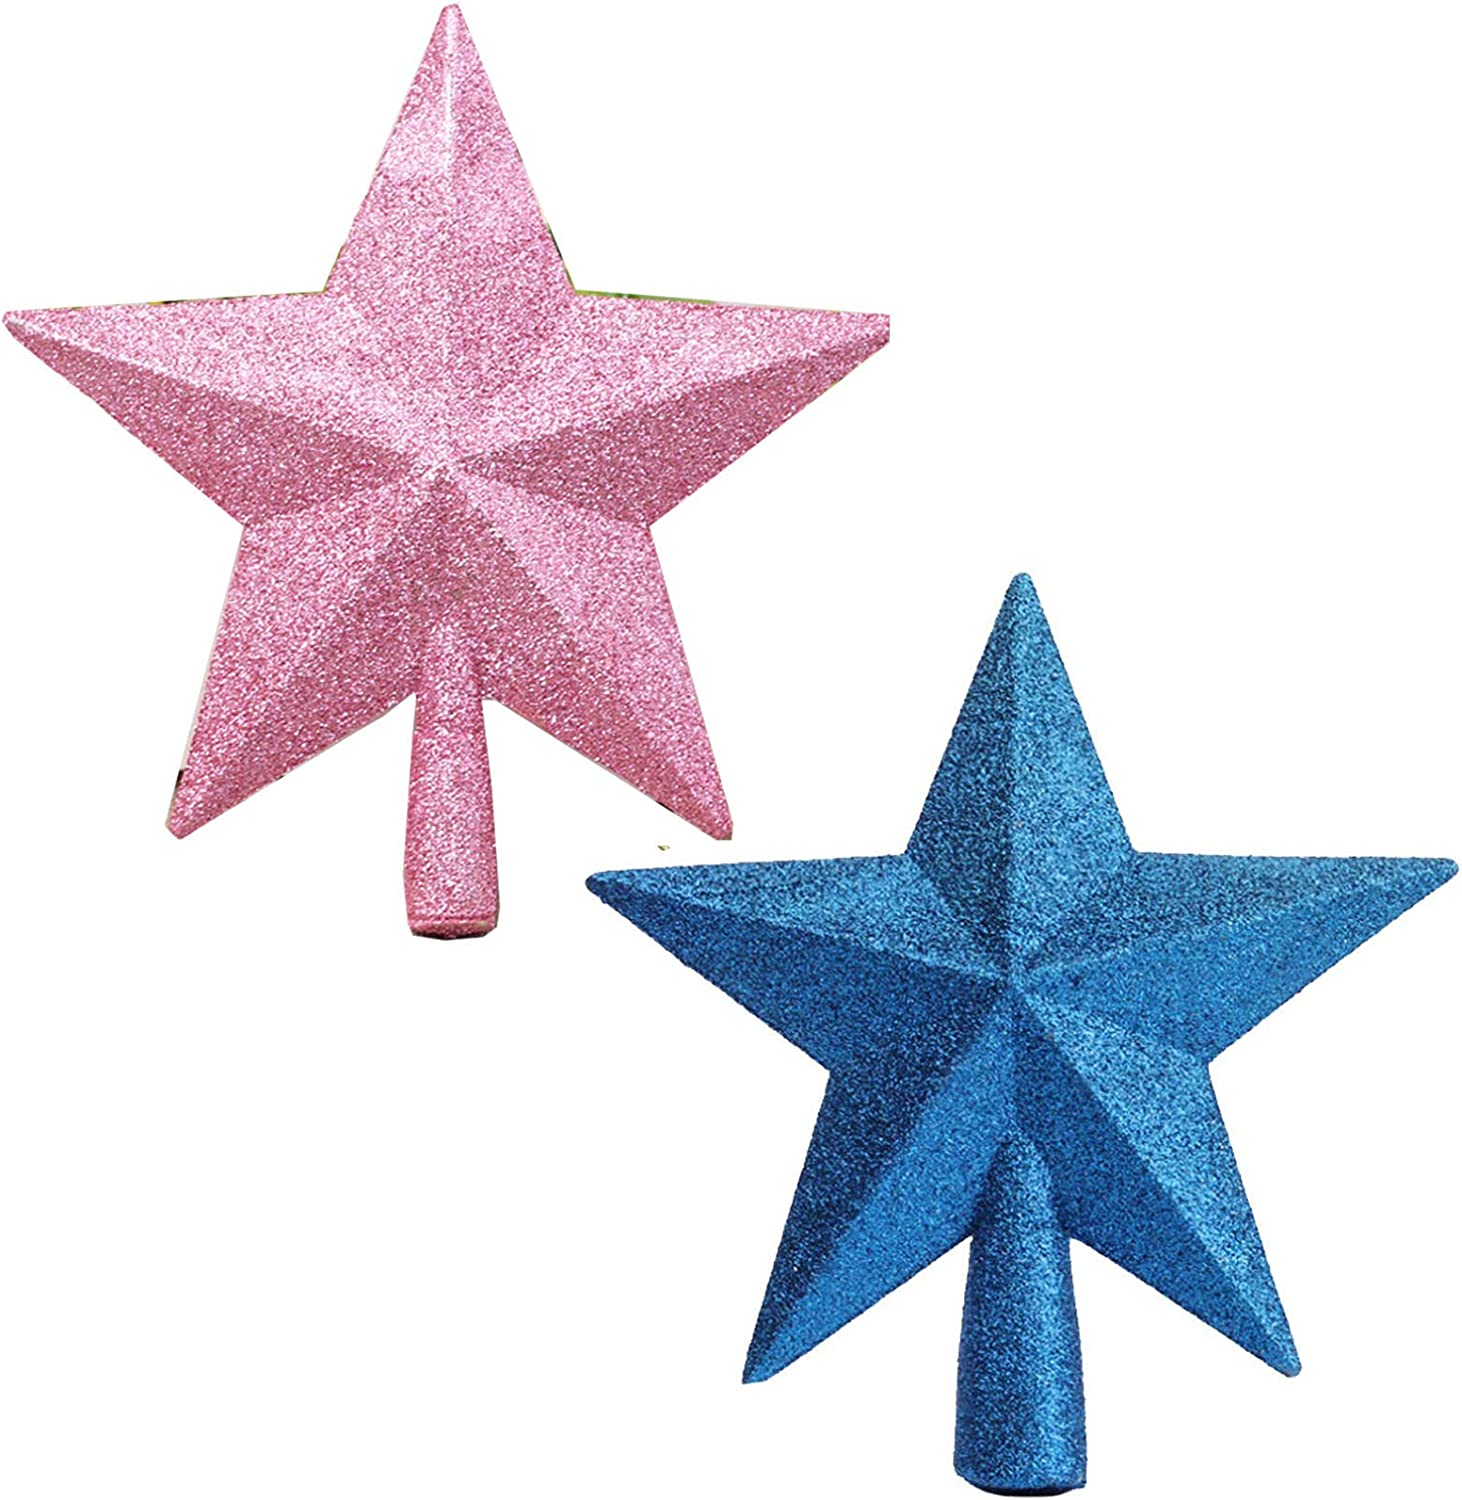 2 Pack Glittered Mini Special Luxury goods price for a limited time Star Topper Treetop fo Tree Christmas